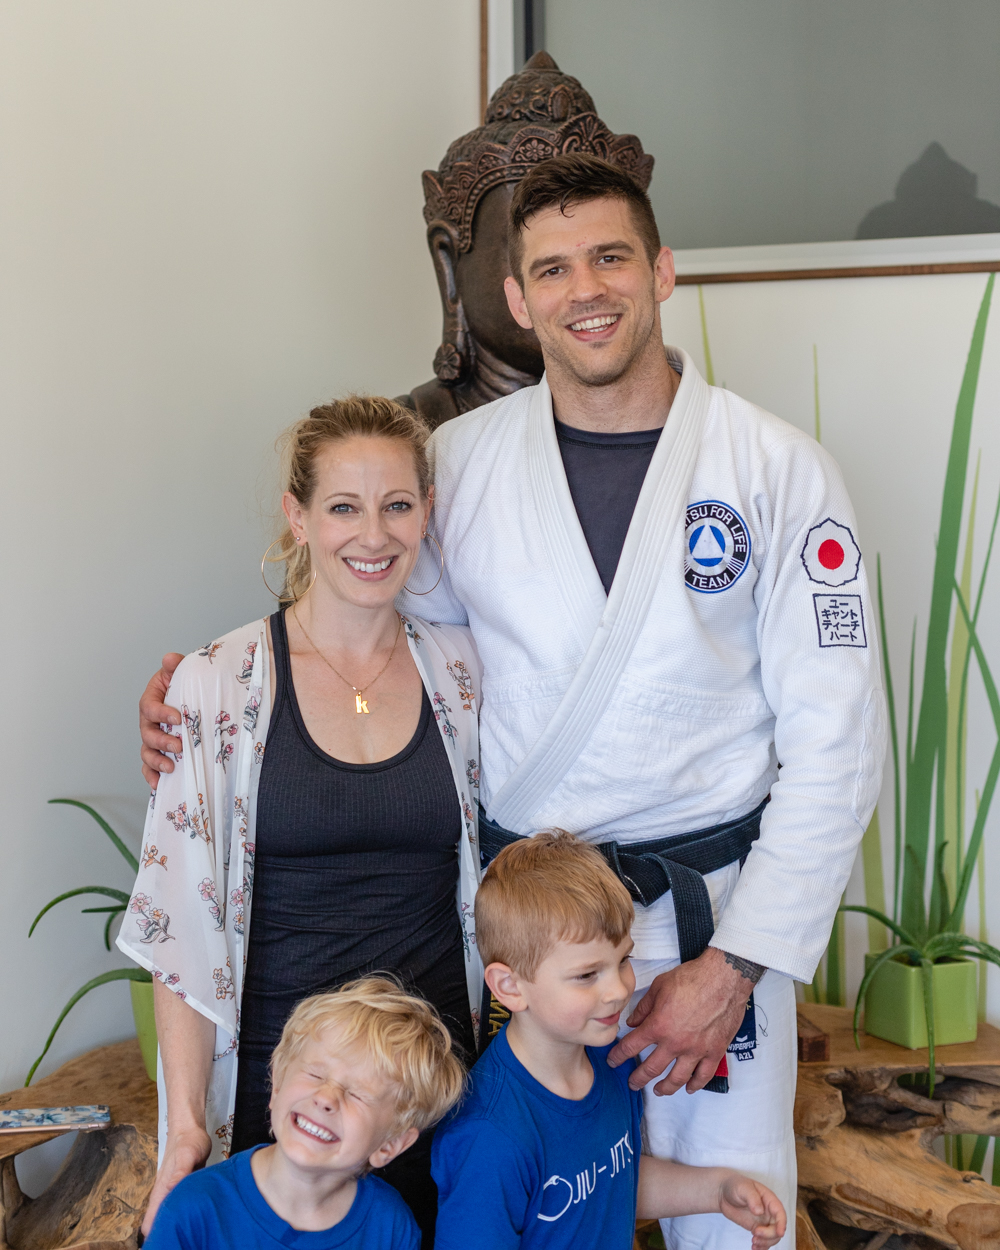 My Family. Katie McClelland, my wife, is the owner of De La Sol Yoga Studios.